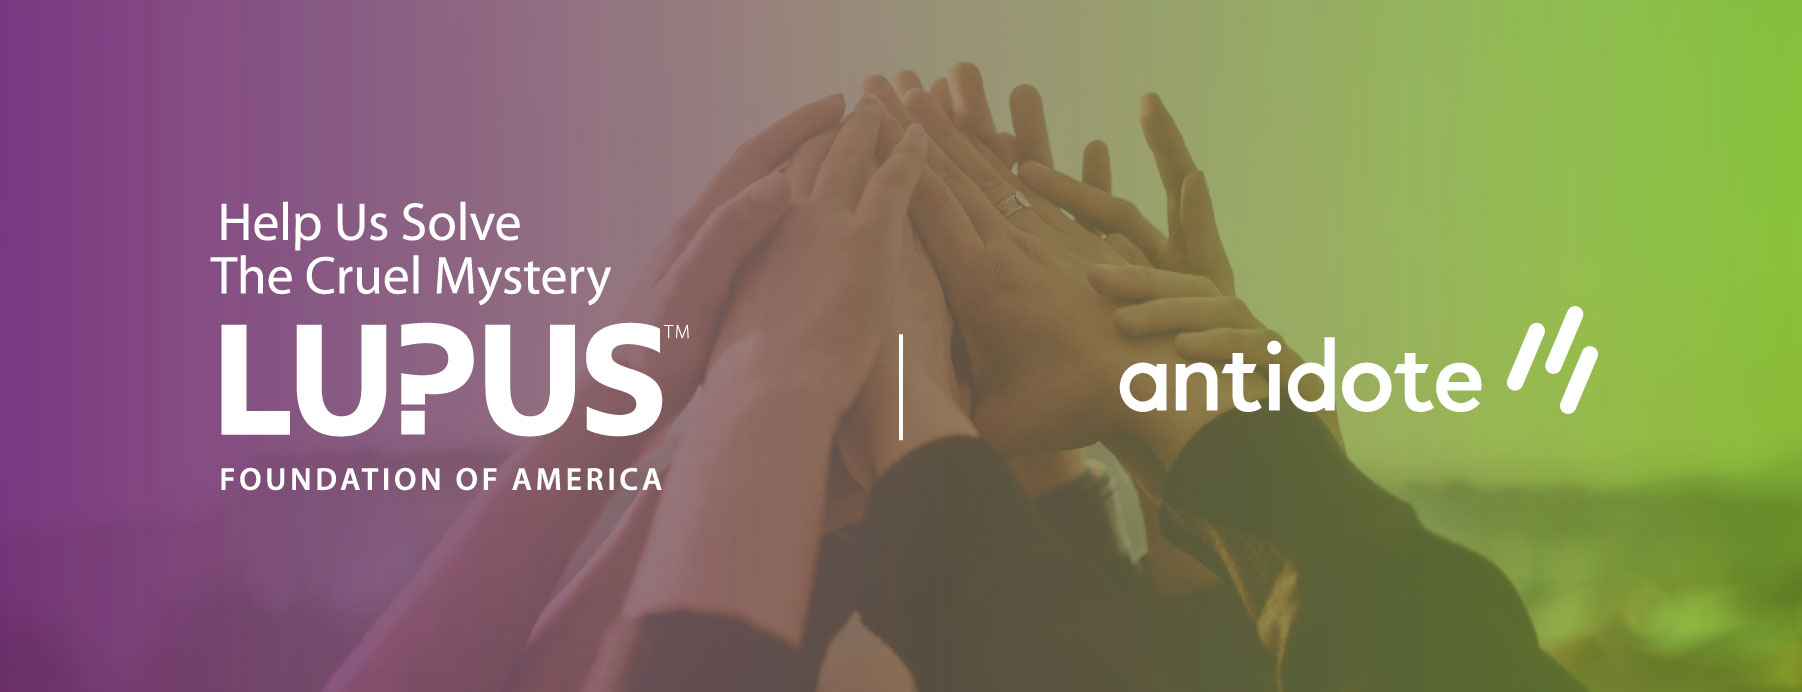 Announcing Our Newest Partner: the Lupus Foundation of America